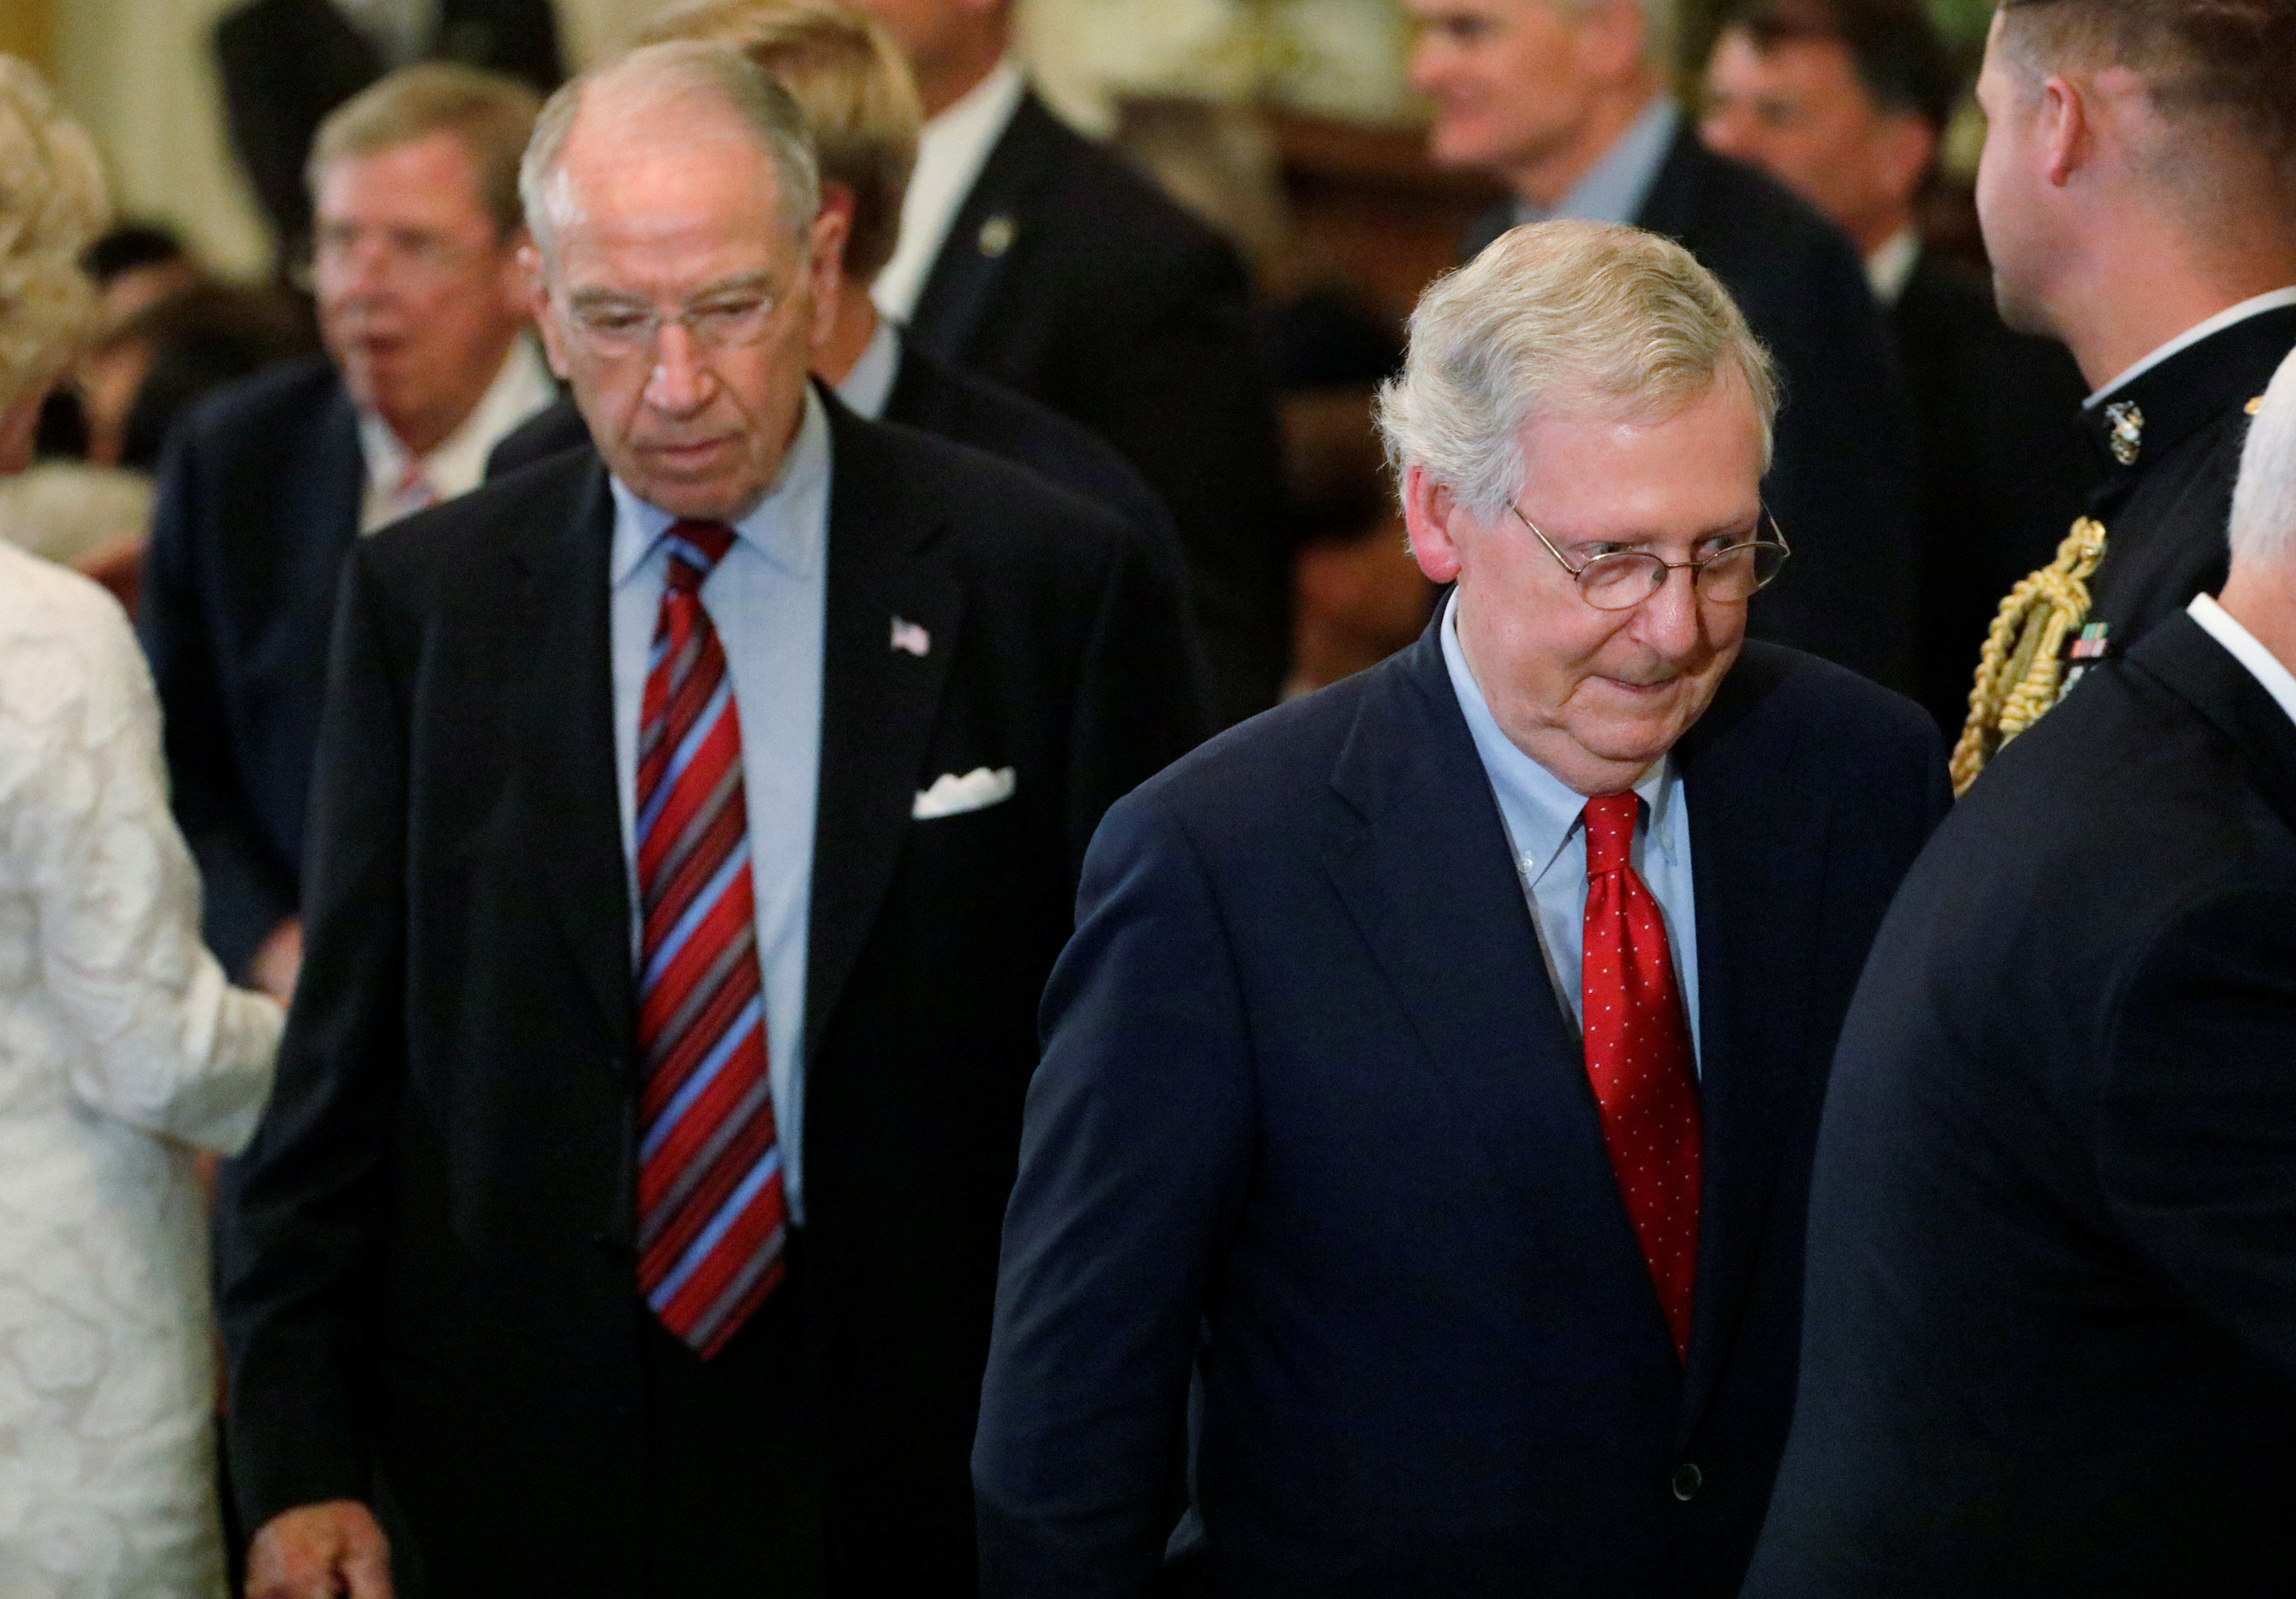 U.S. Senate Judiciary Committee Chairman Chuck Grassley and Senate Majority Leader Mitch McConnell arrive to watch President Donald Trump announce that Judge Brett Kavanaugh is his nominee for the U.S. Supreme Court in the East Room of the White House in Washington, U.S., July 9, 2018. Picture taken July 9, 2018.  REUTERS/Jim Bourg